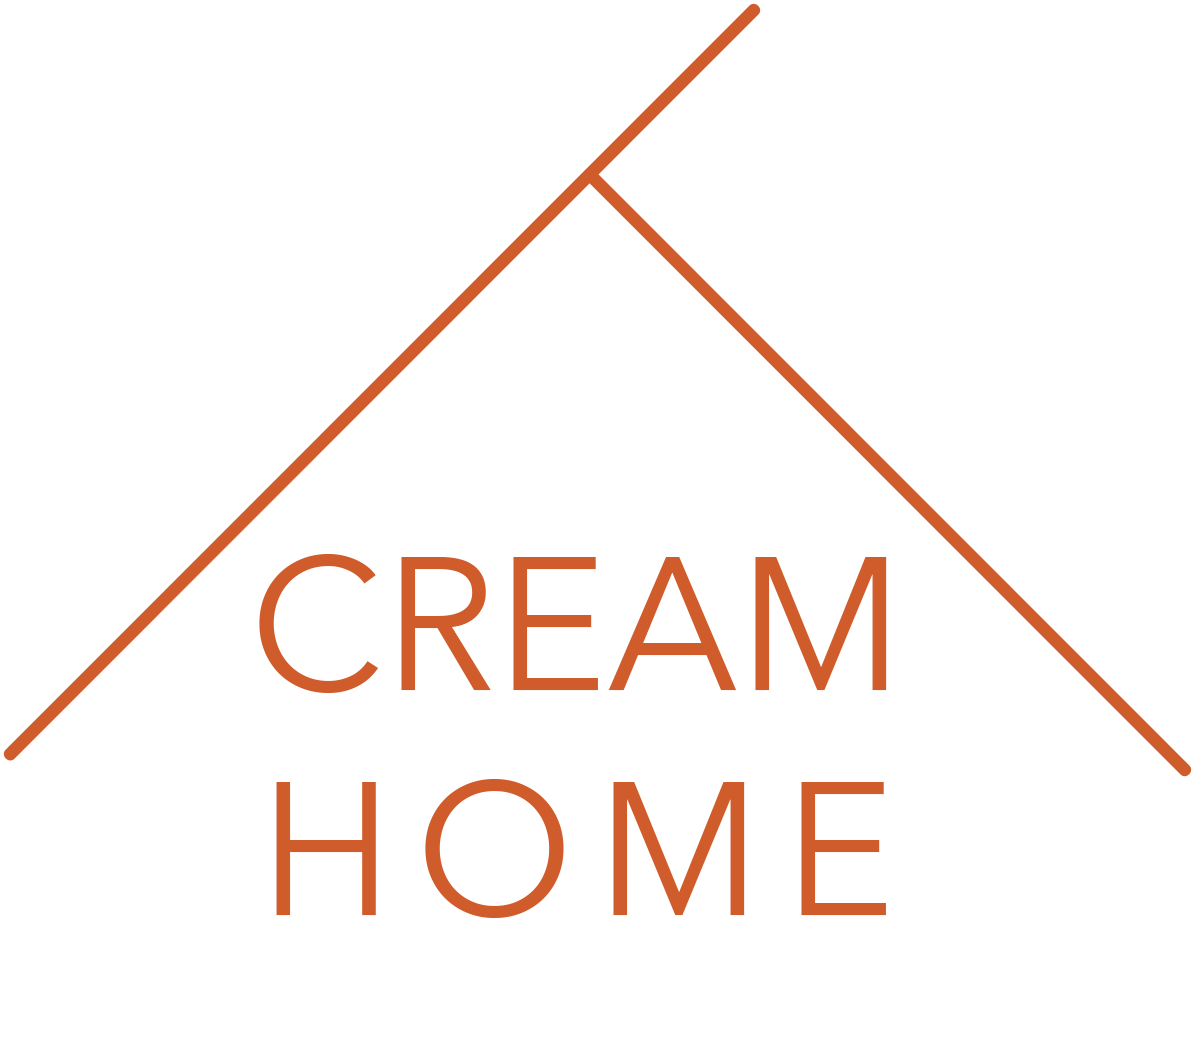 Cream Home News